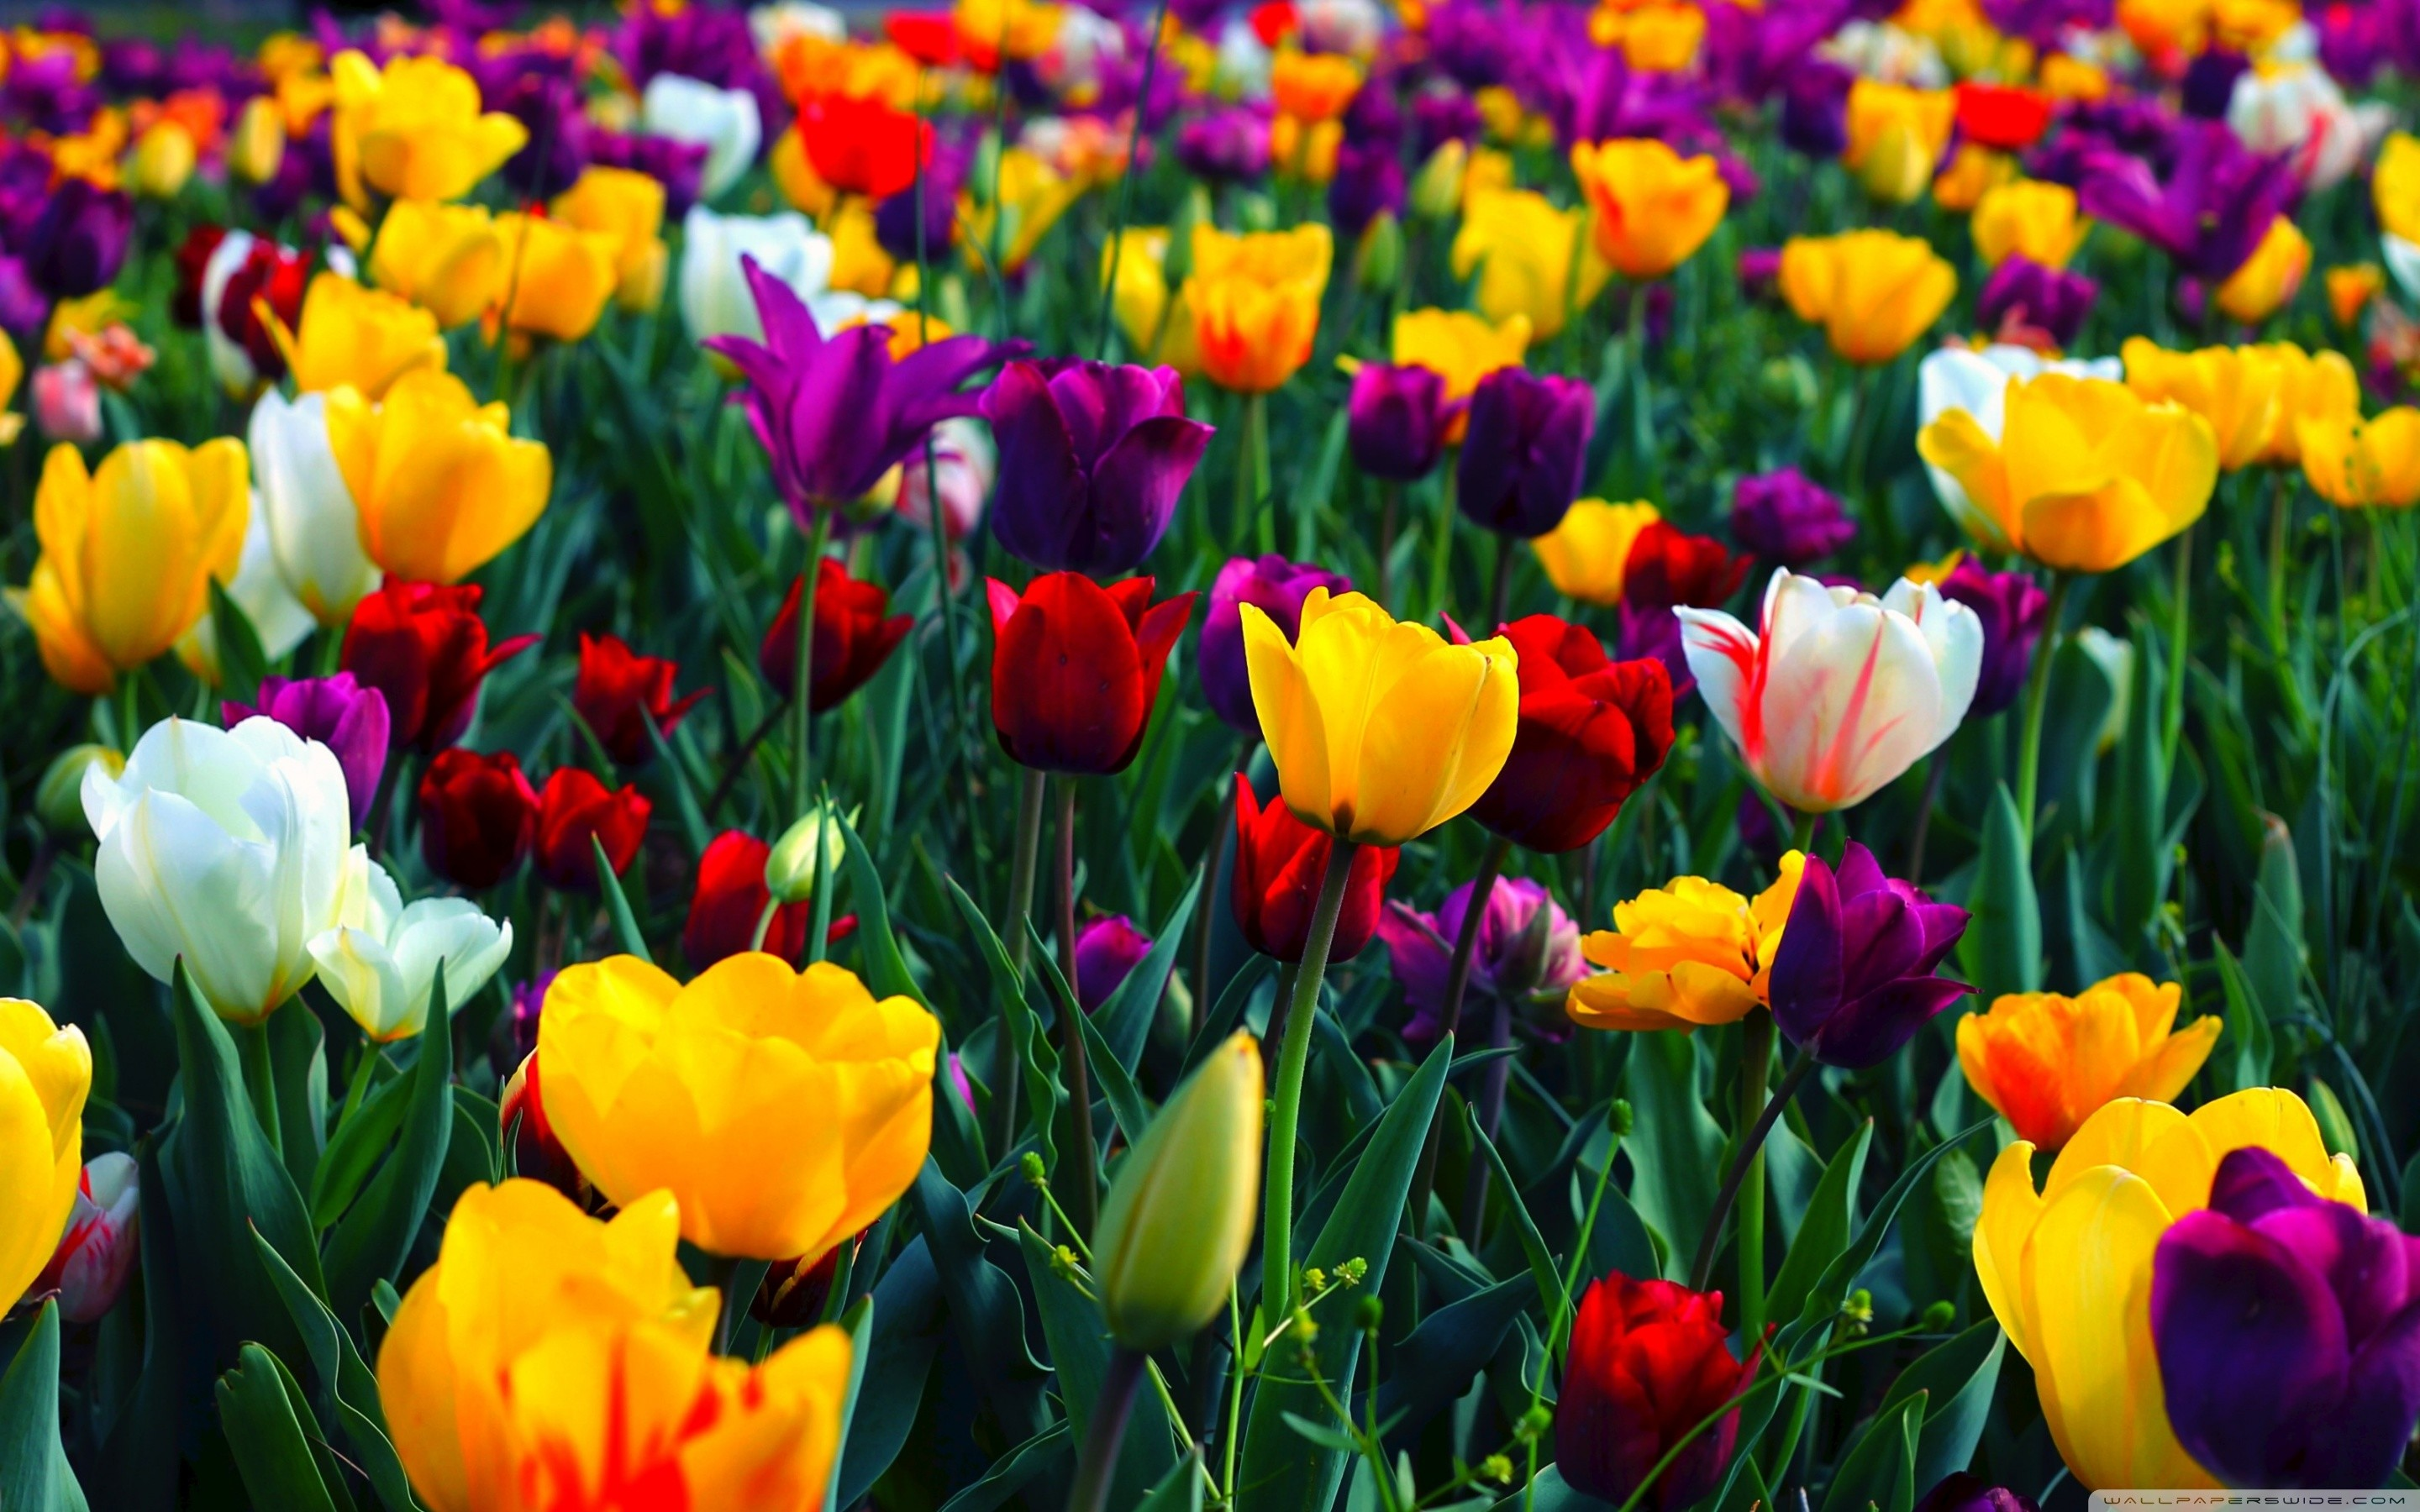 Spring flower wallpapers backgrounds 69 background pictures 1920x1080 flower desktop wallpaper 11427 spring flower desktop wallpaper 47 pictures mightylinksfo